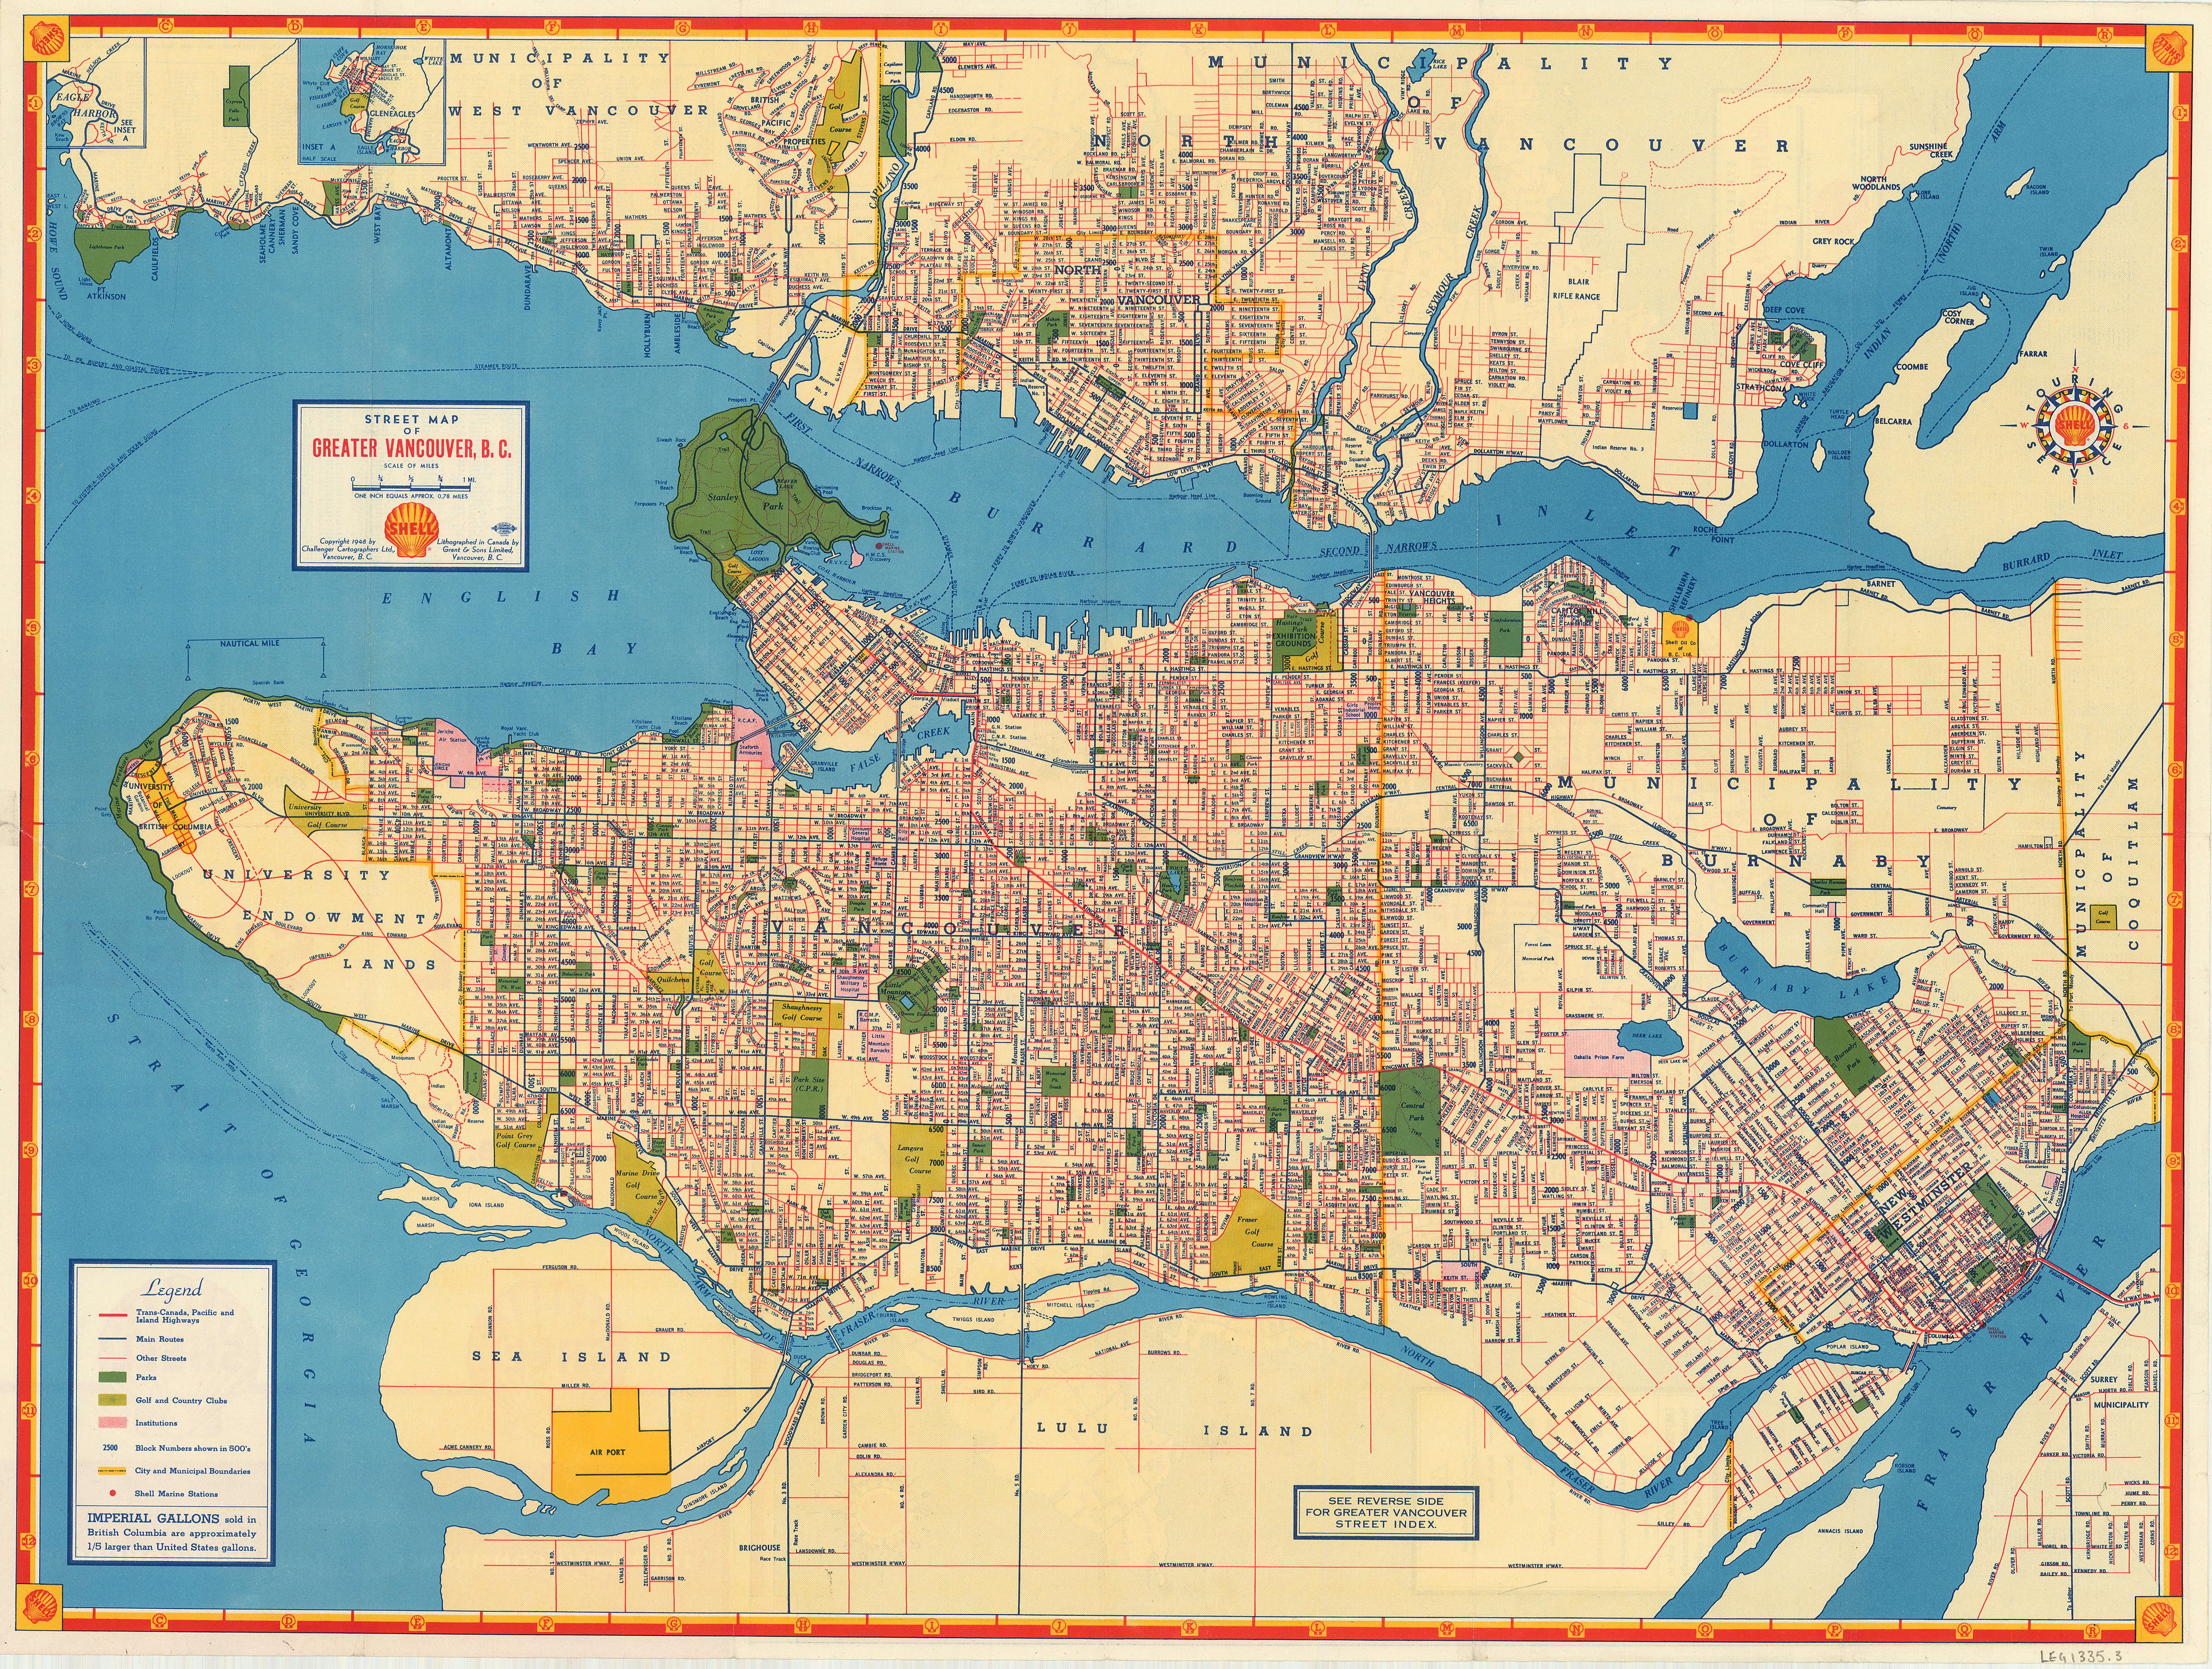 Street map of Greater Vancouver, B.C. - City of Vancouver Archives